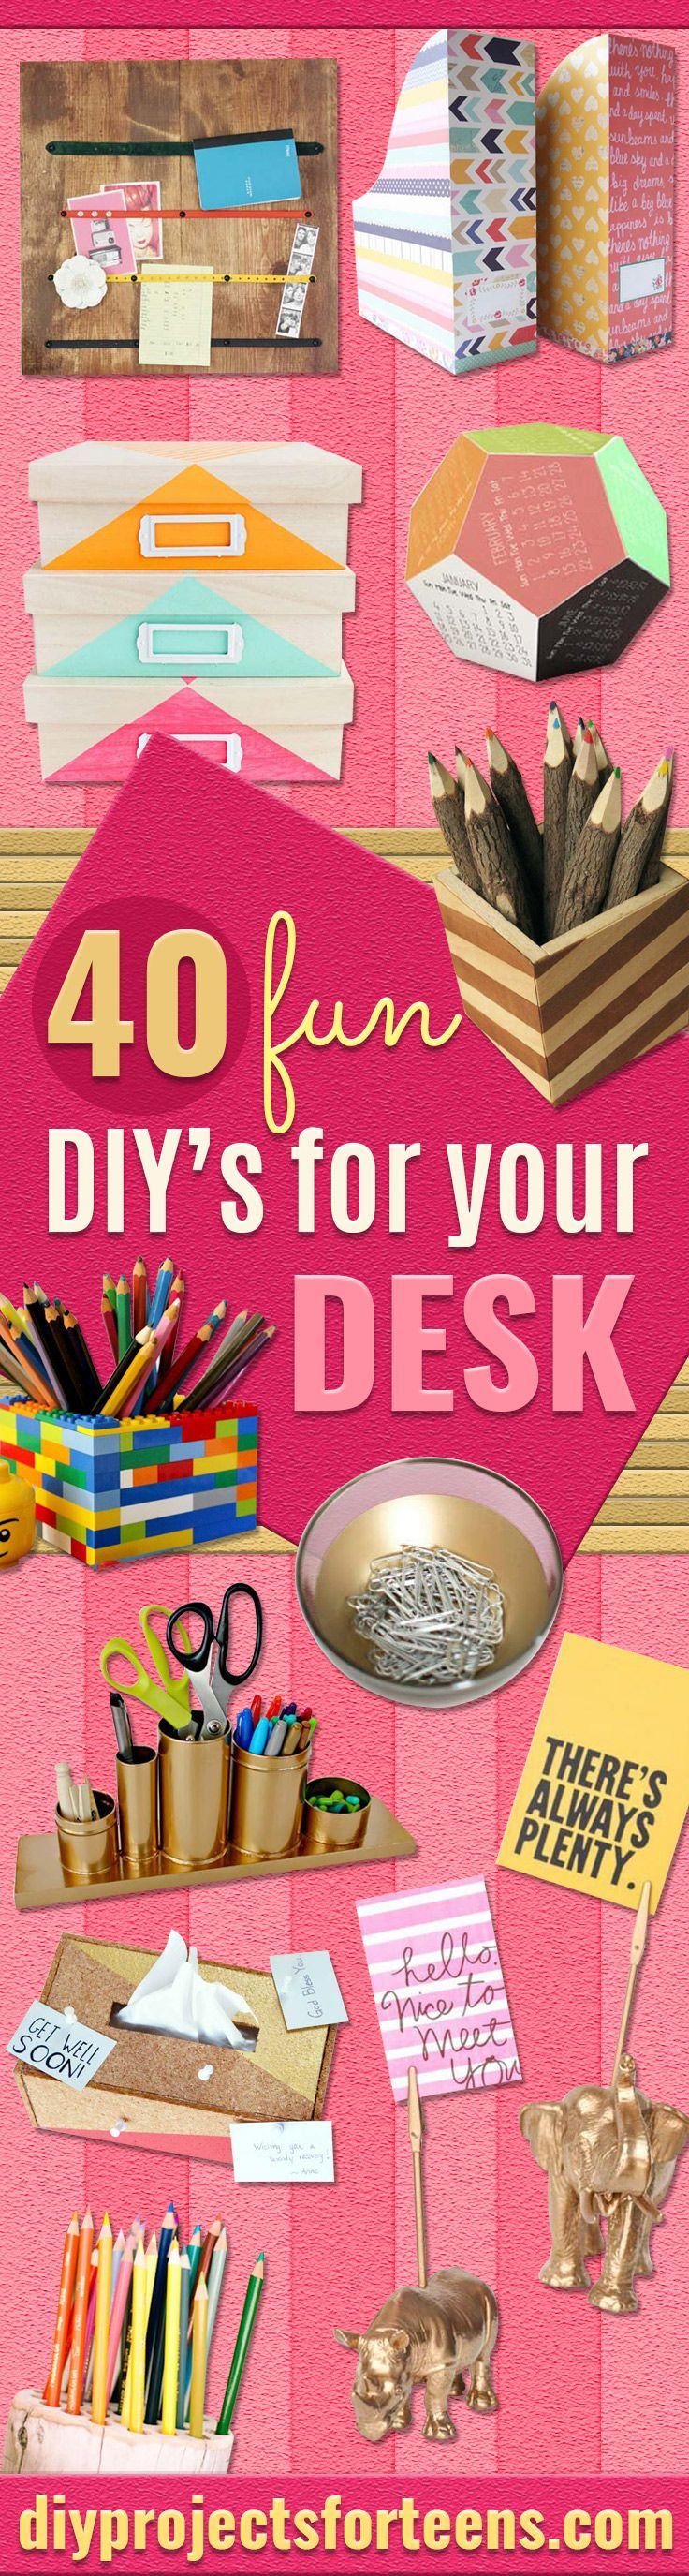 Cool Craft Ideas For Christmas Gifts Part - 34: 40 Fun DIYs For Your Desk